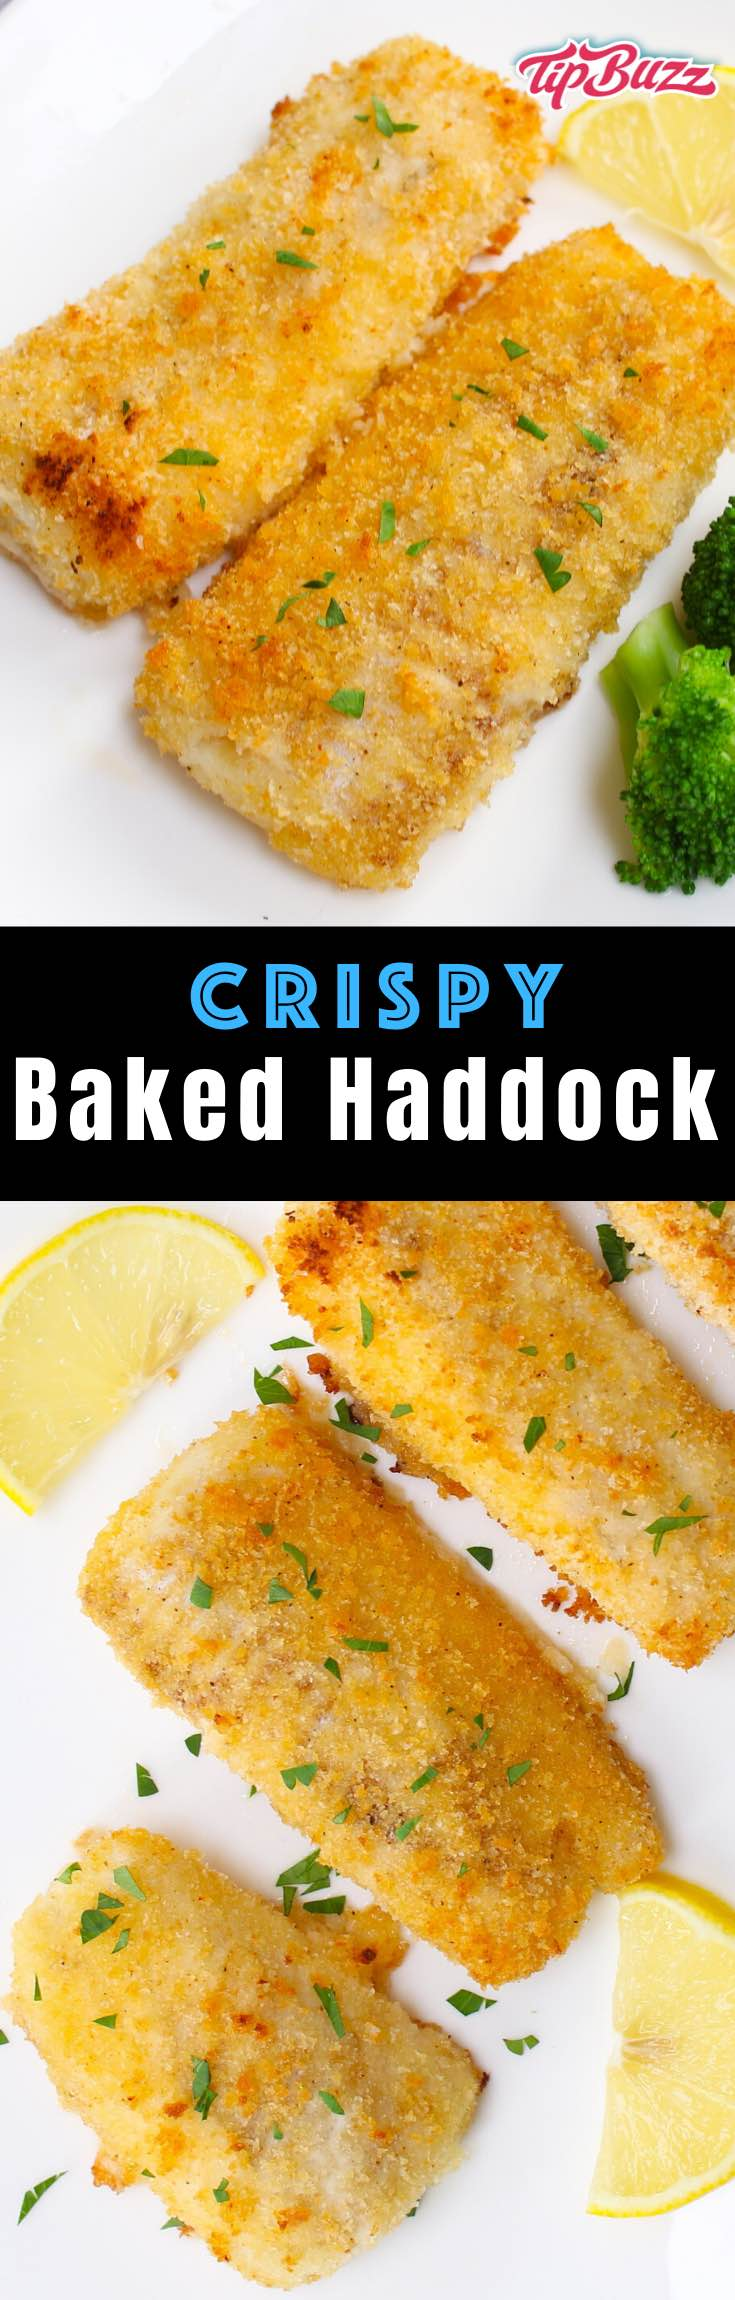 Crispy Baked Haddock with mild flavor and ready in just 15 minutes for a healthy dinner option that's easy to make!